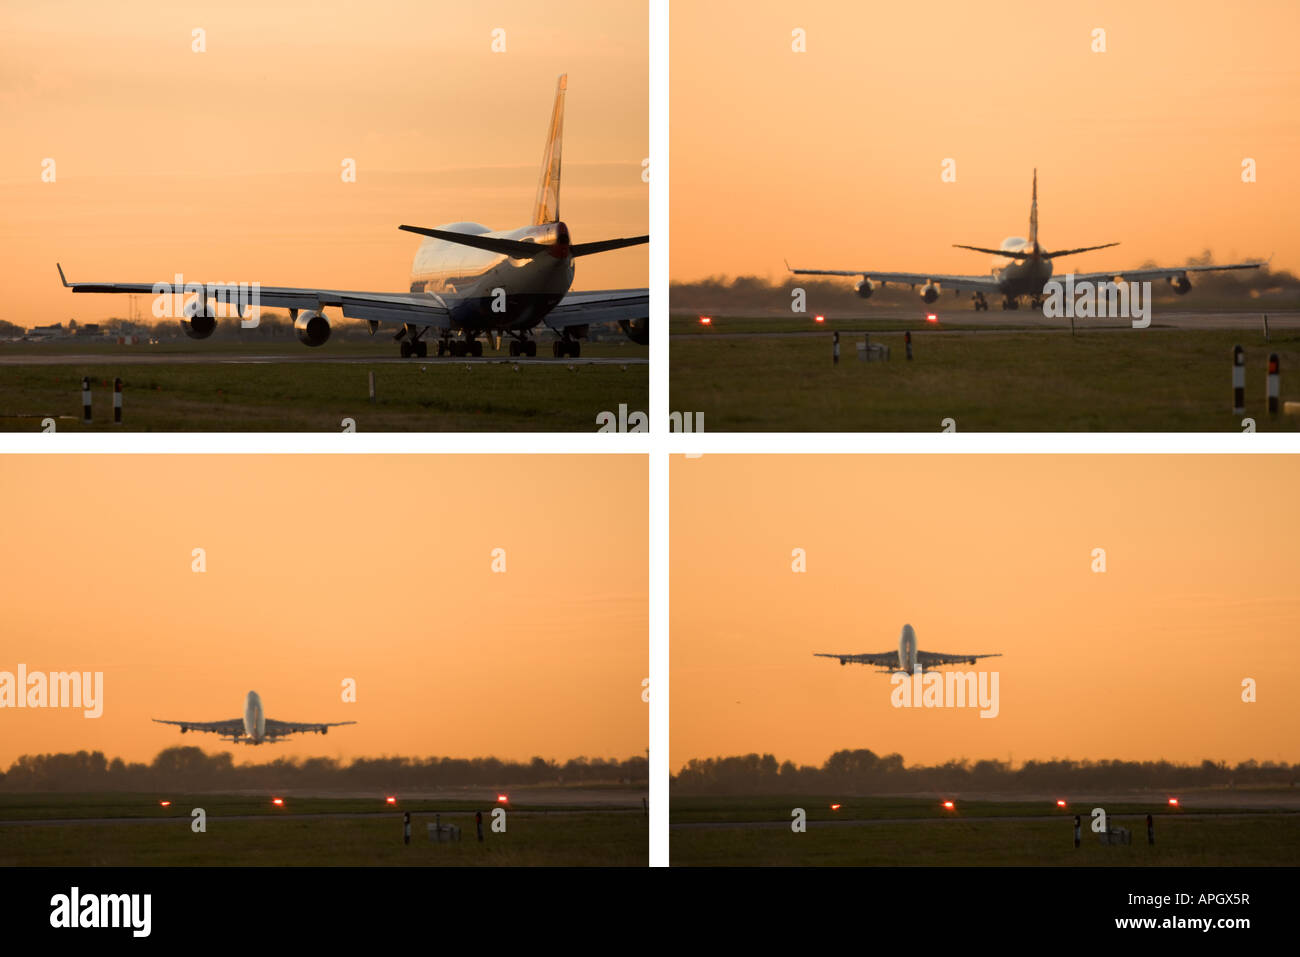 4 image collage showing progess of British Airways Boeing 747 taking off at London Heathrow Airport UK - Stock Image